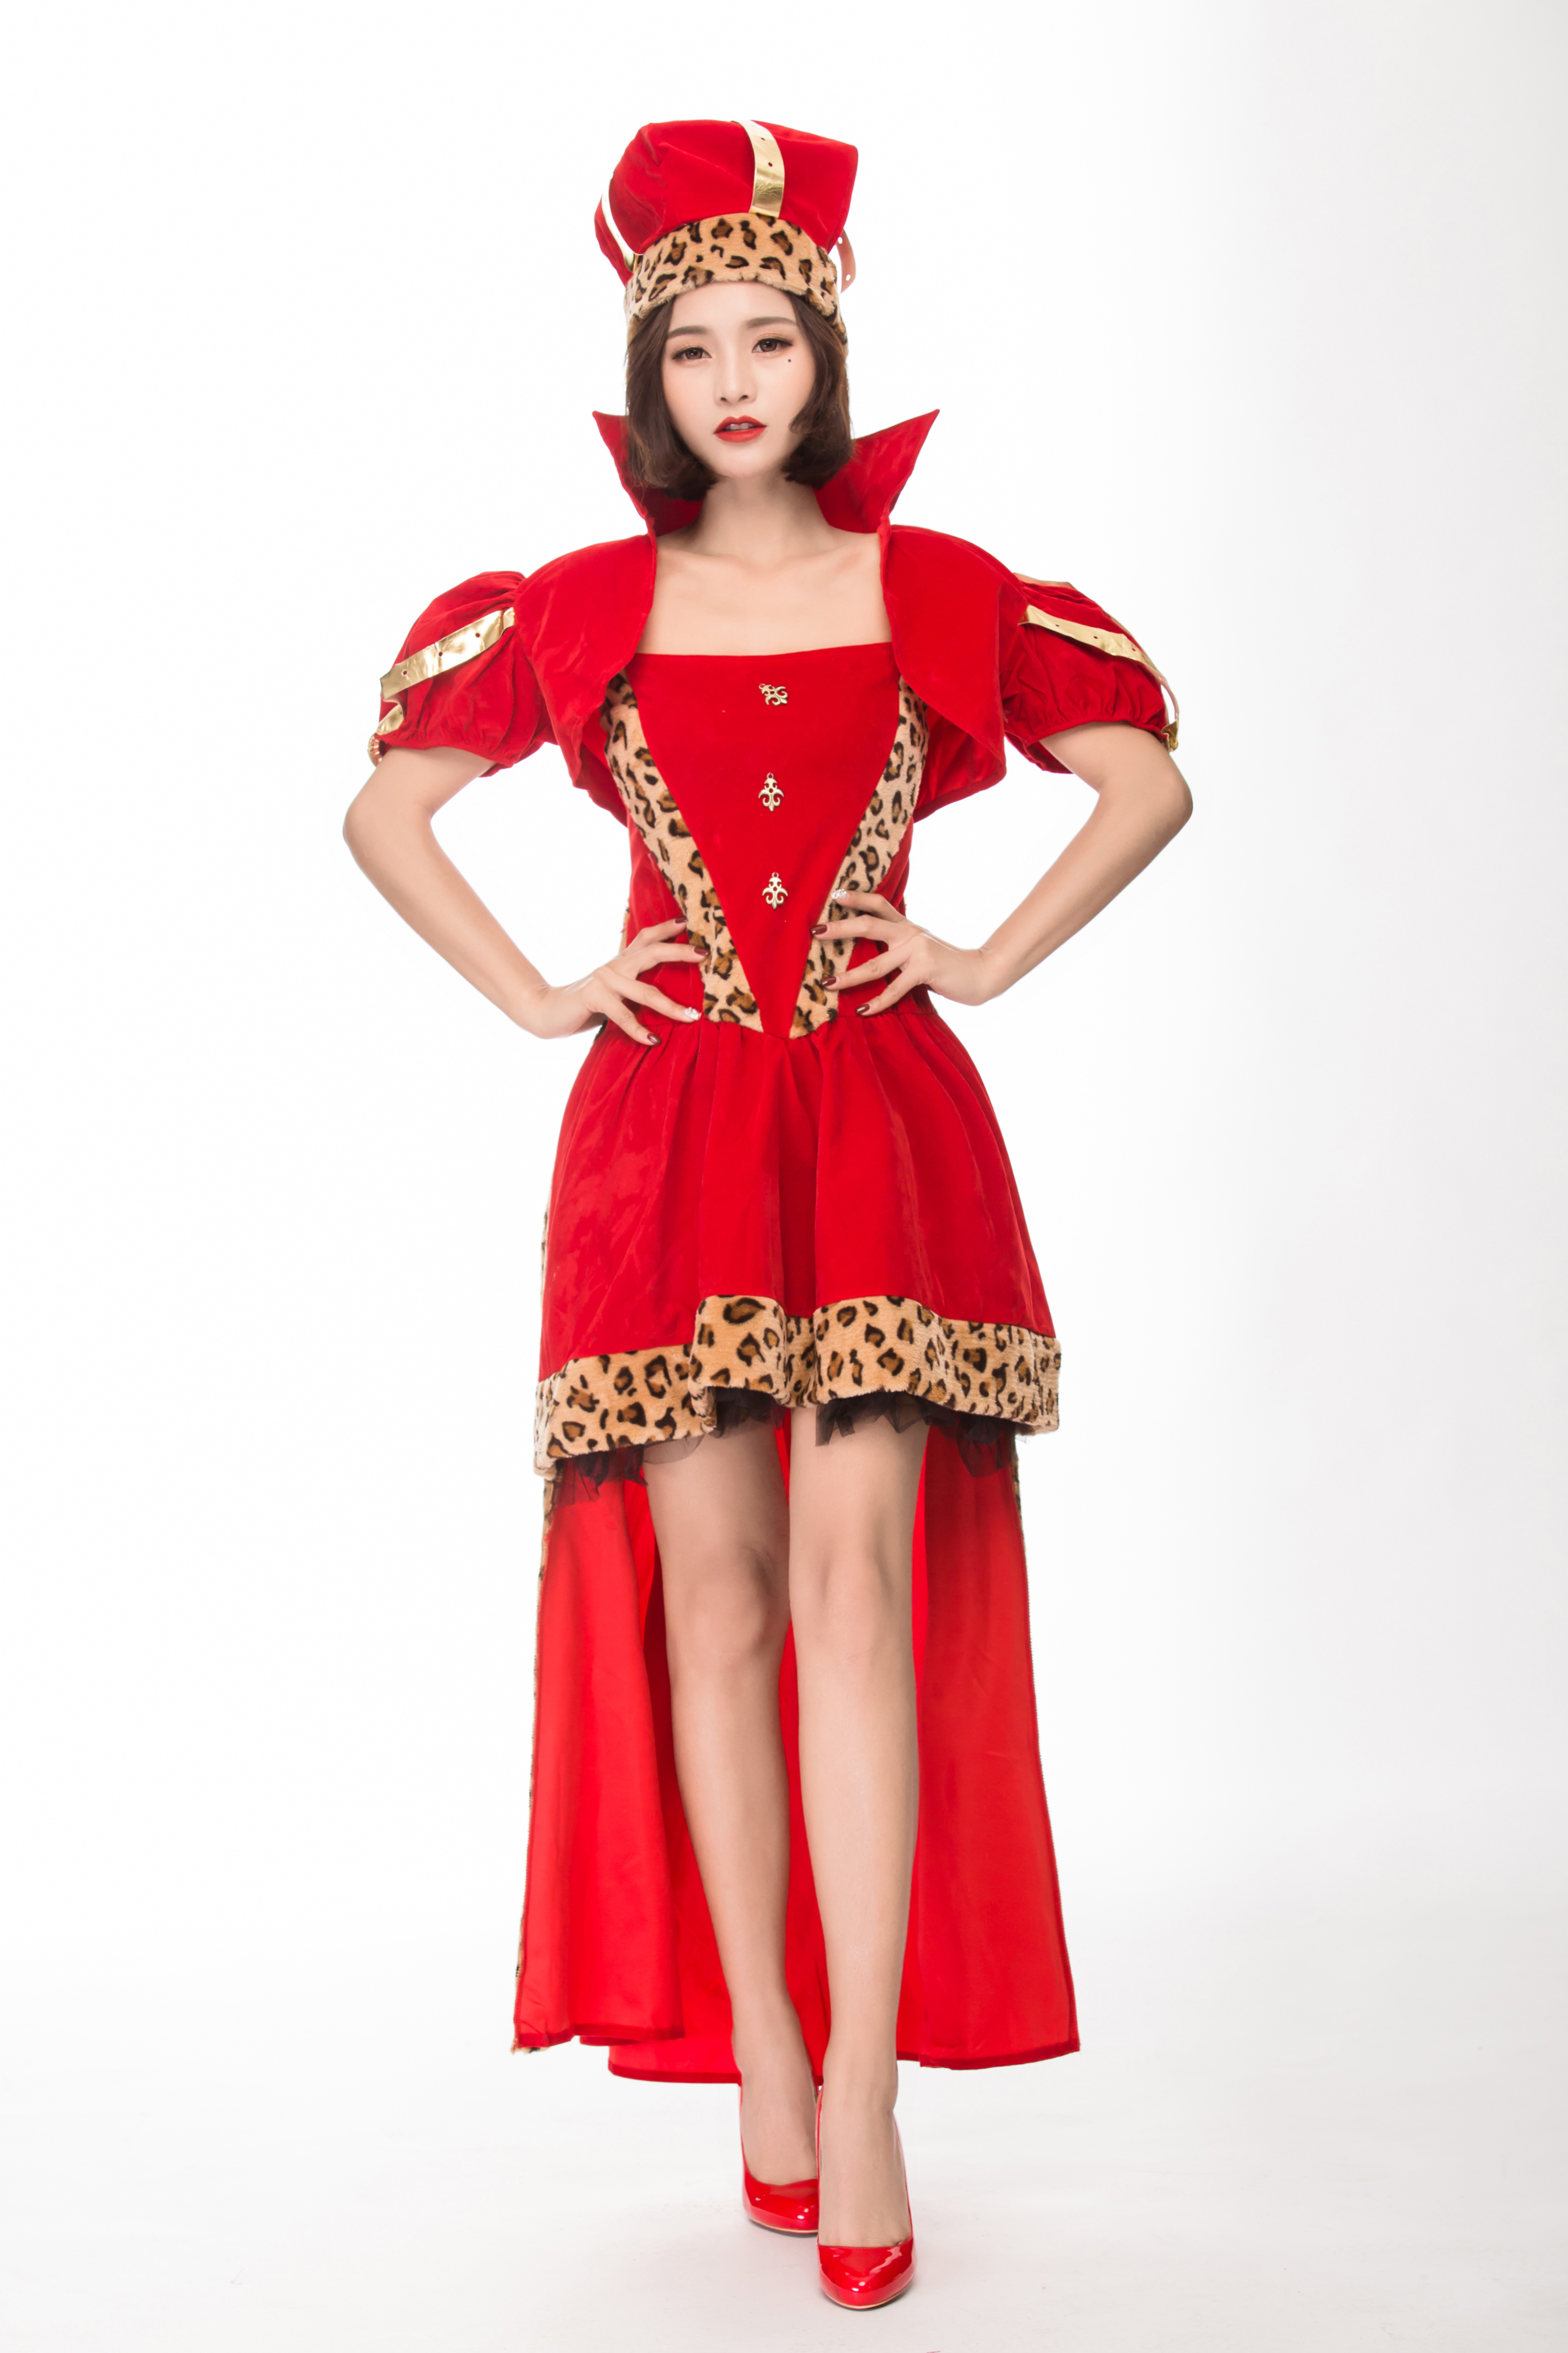 Adult womens christmas costume